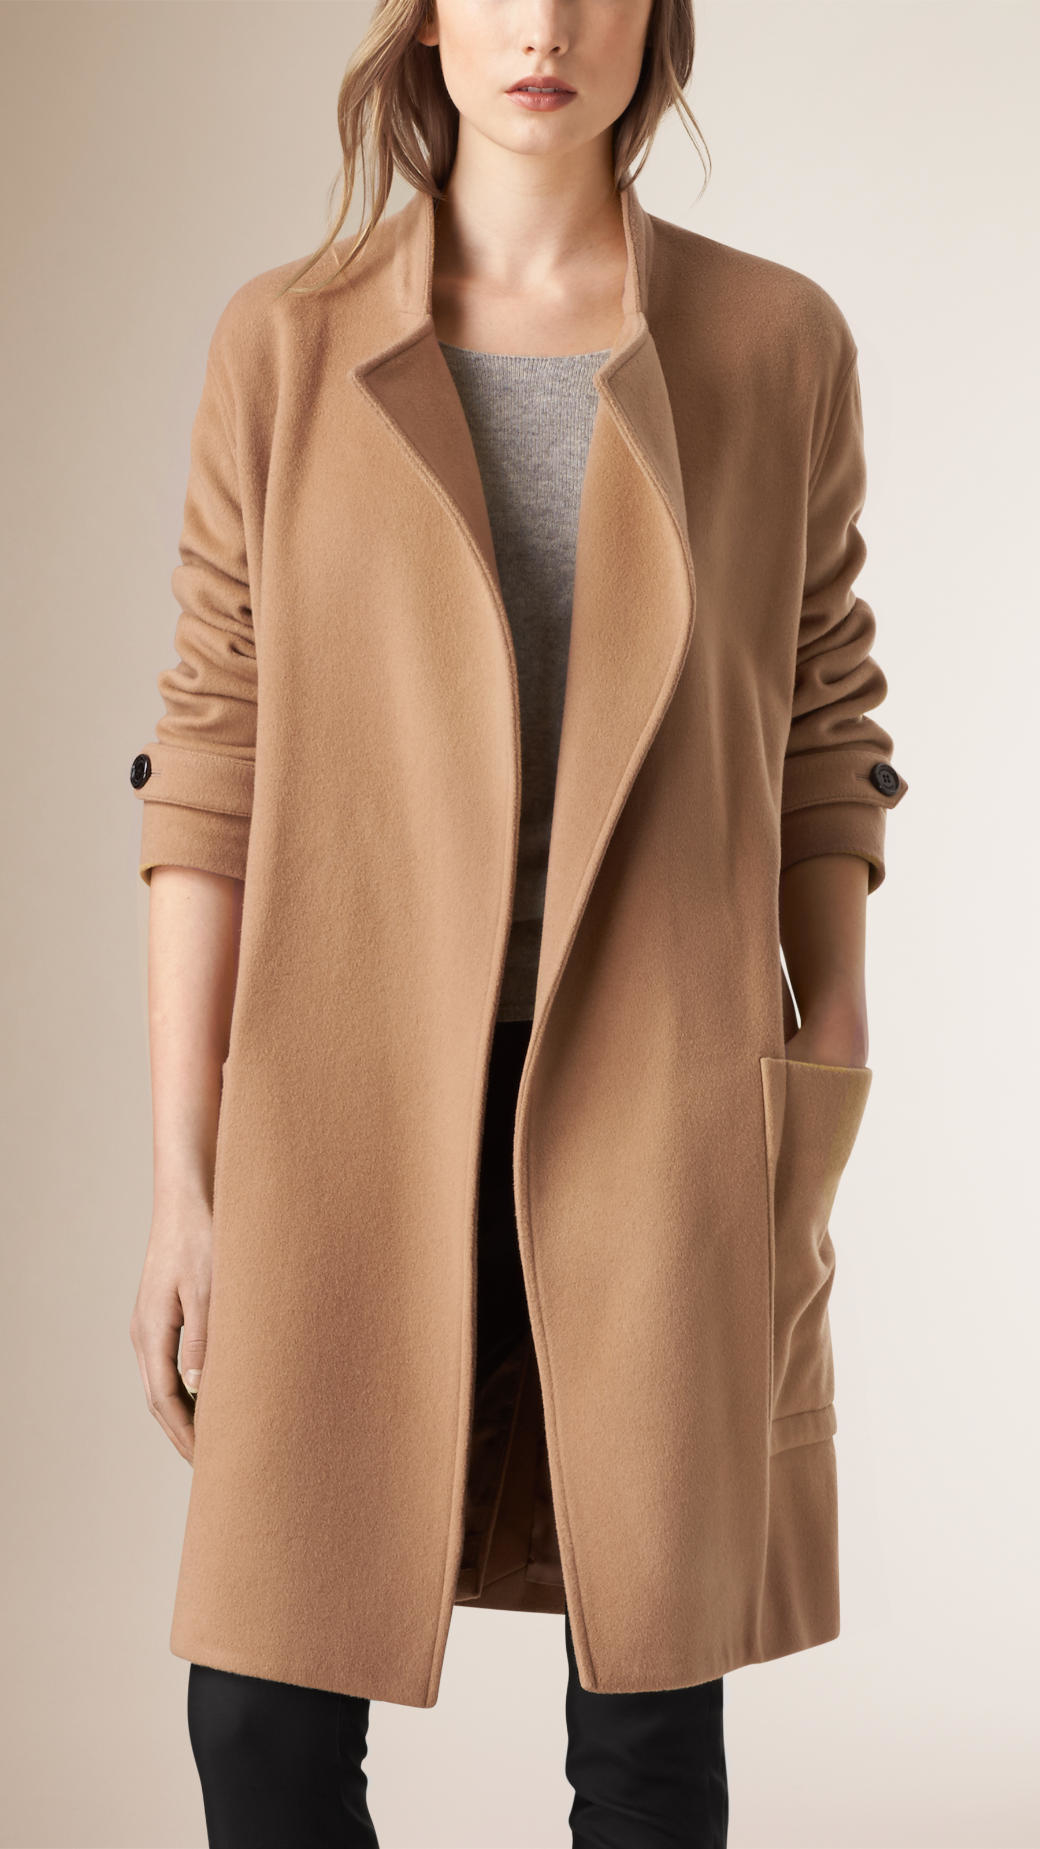 Burberry Relaxed-Fit Wool-Cashmere Coat in Natural | Lyst